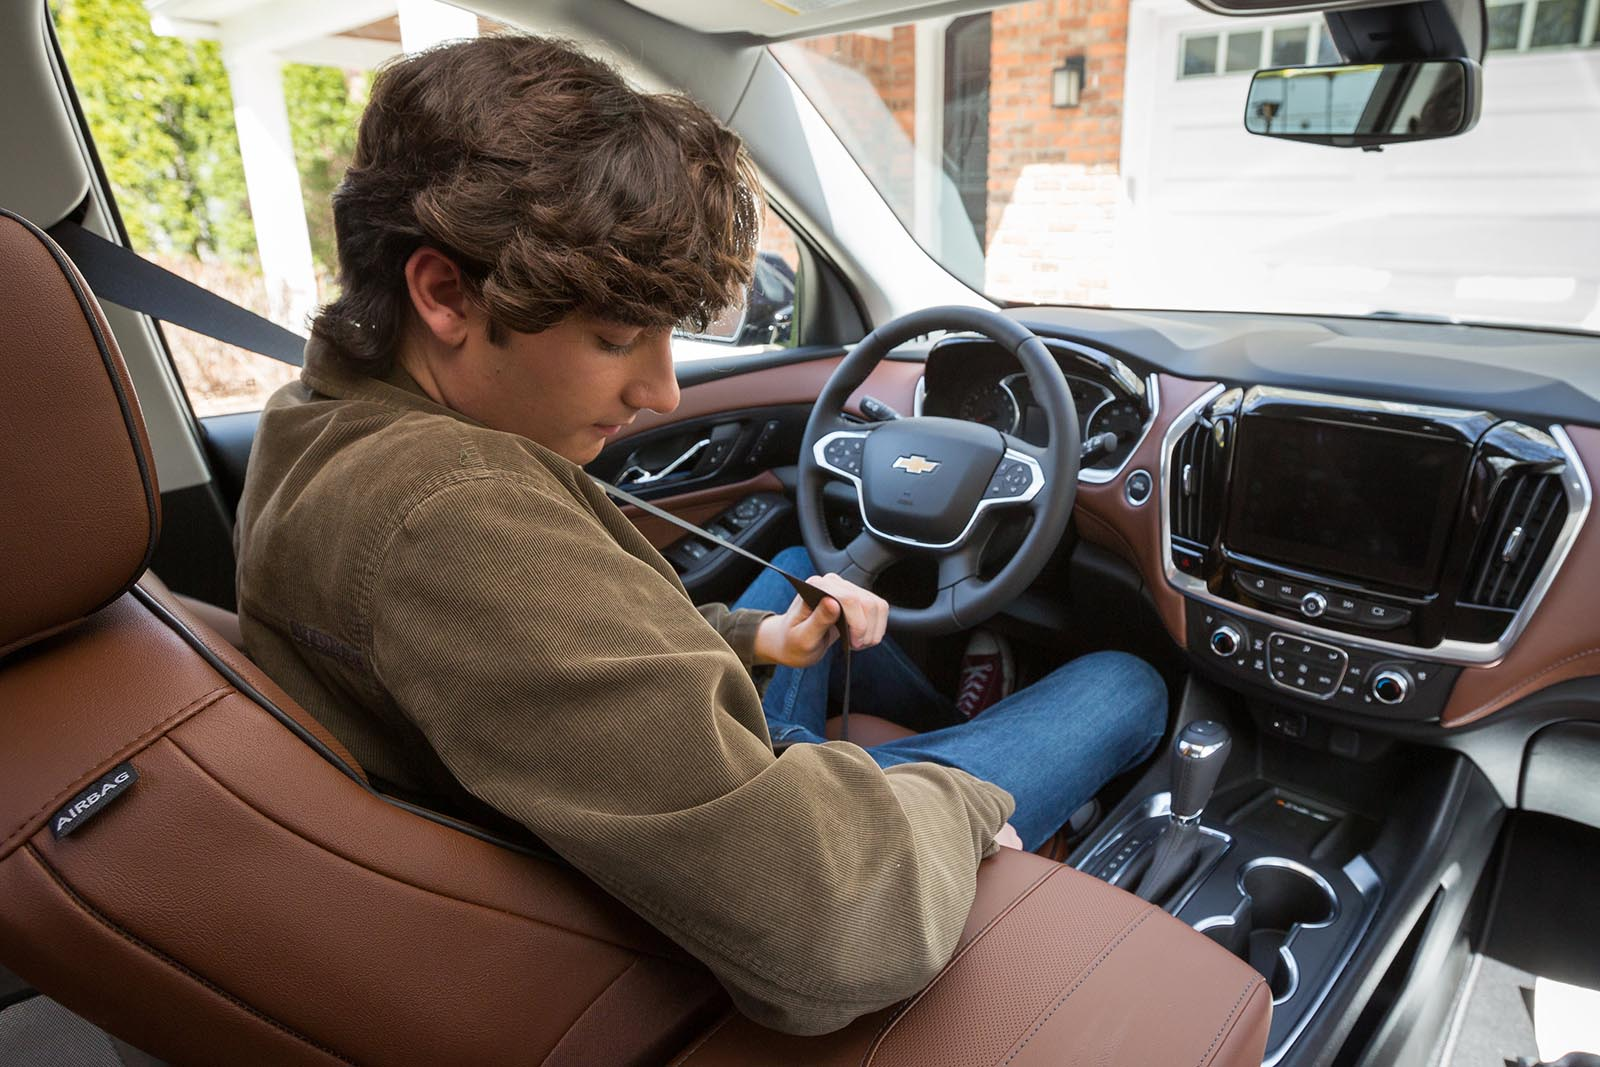 GM Buckle to Drive system